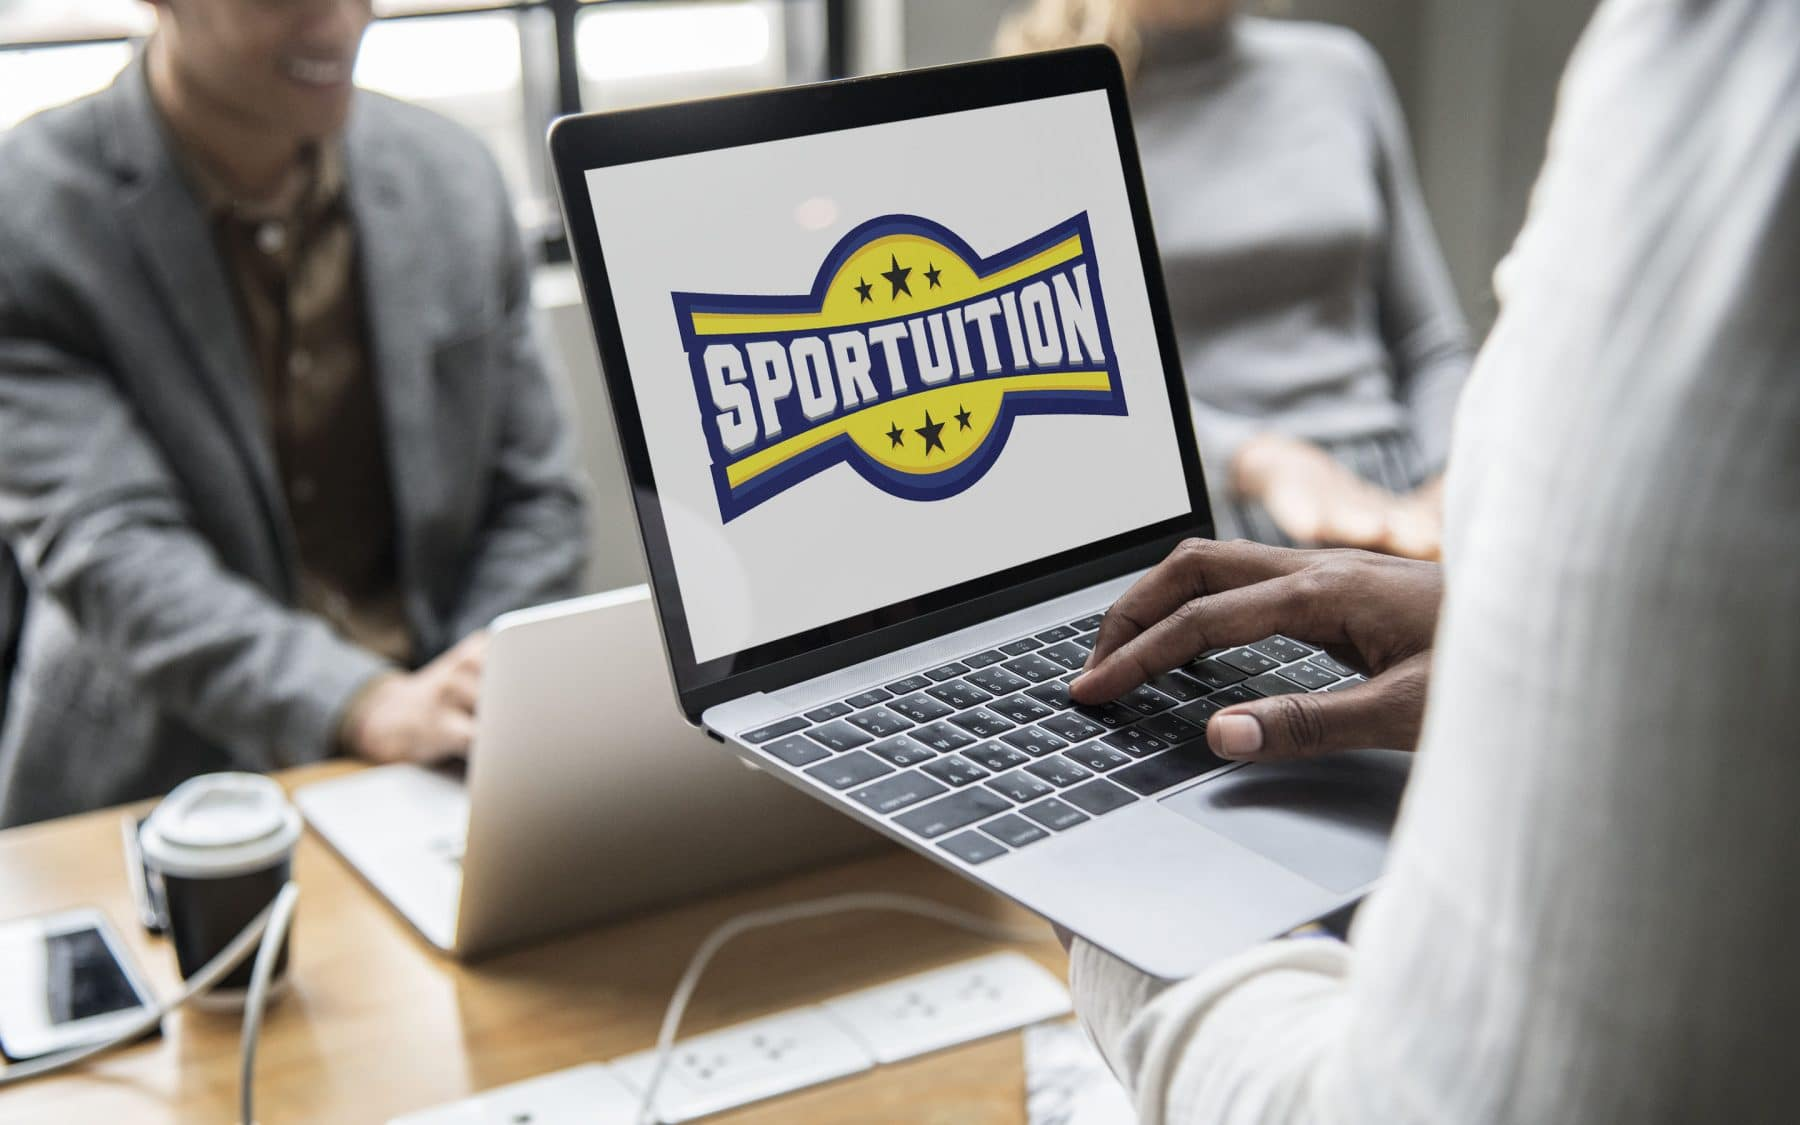 Sportuition 2